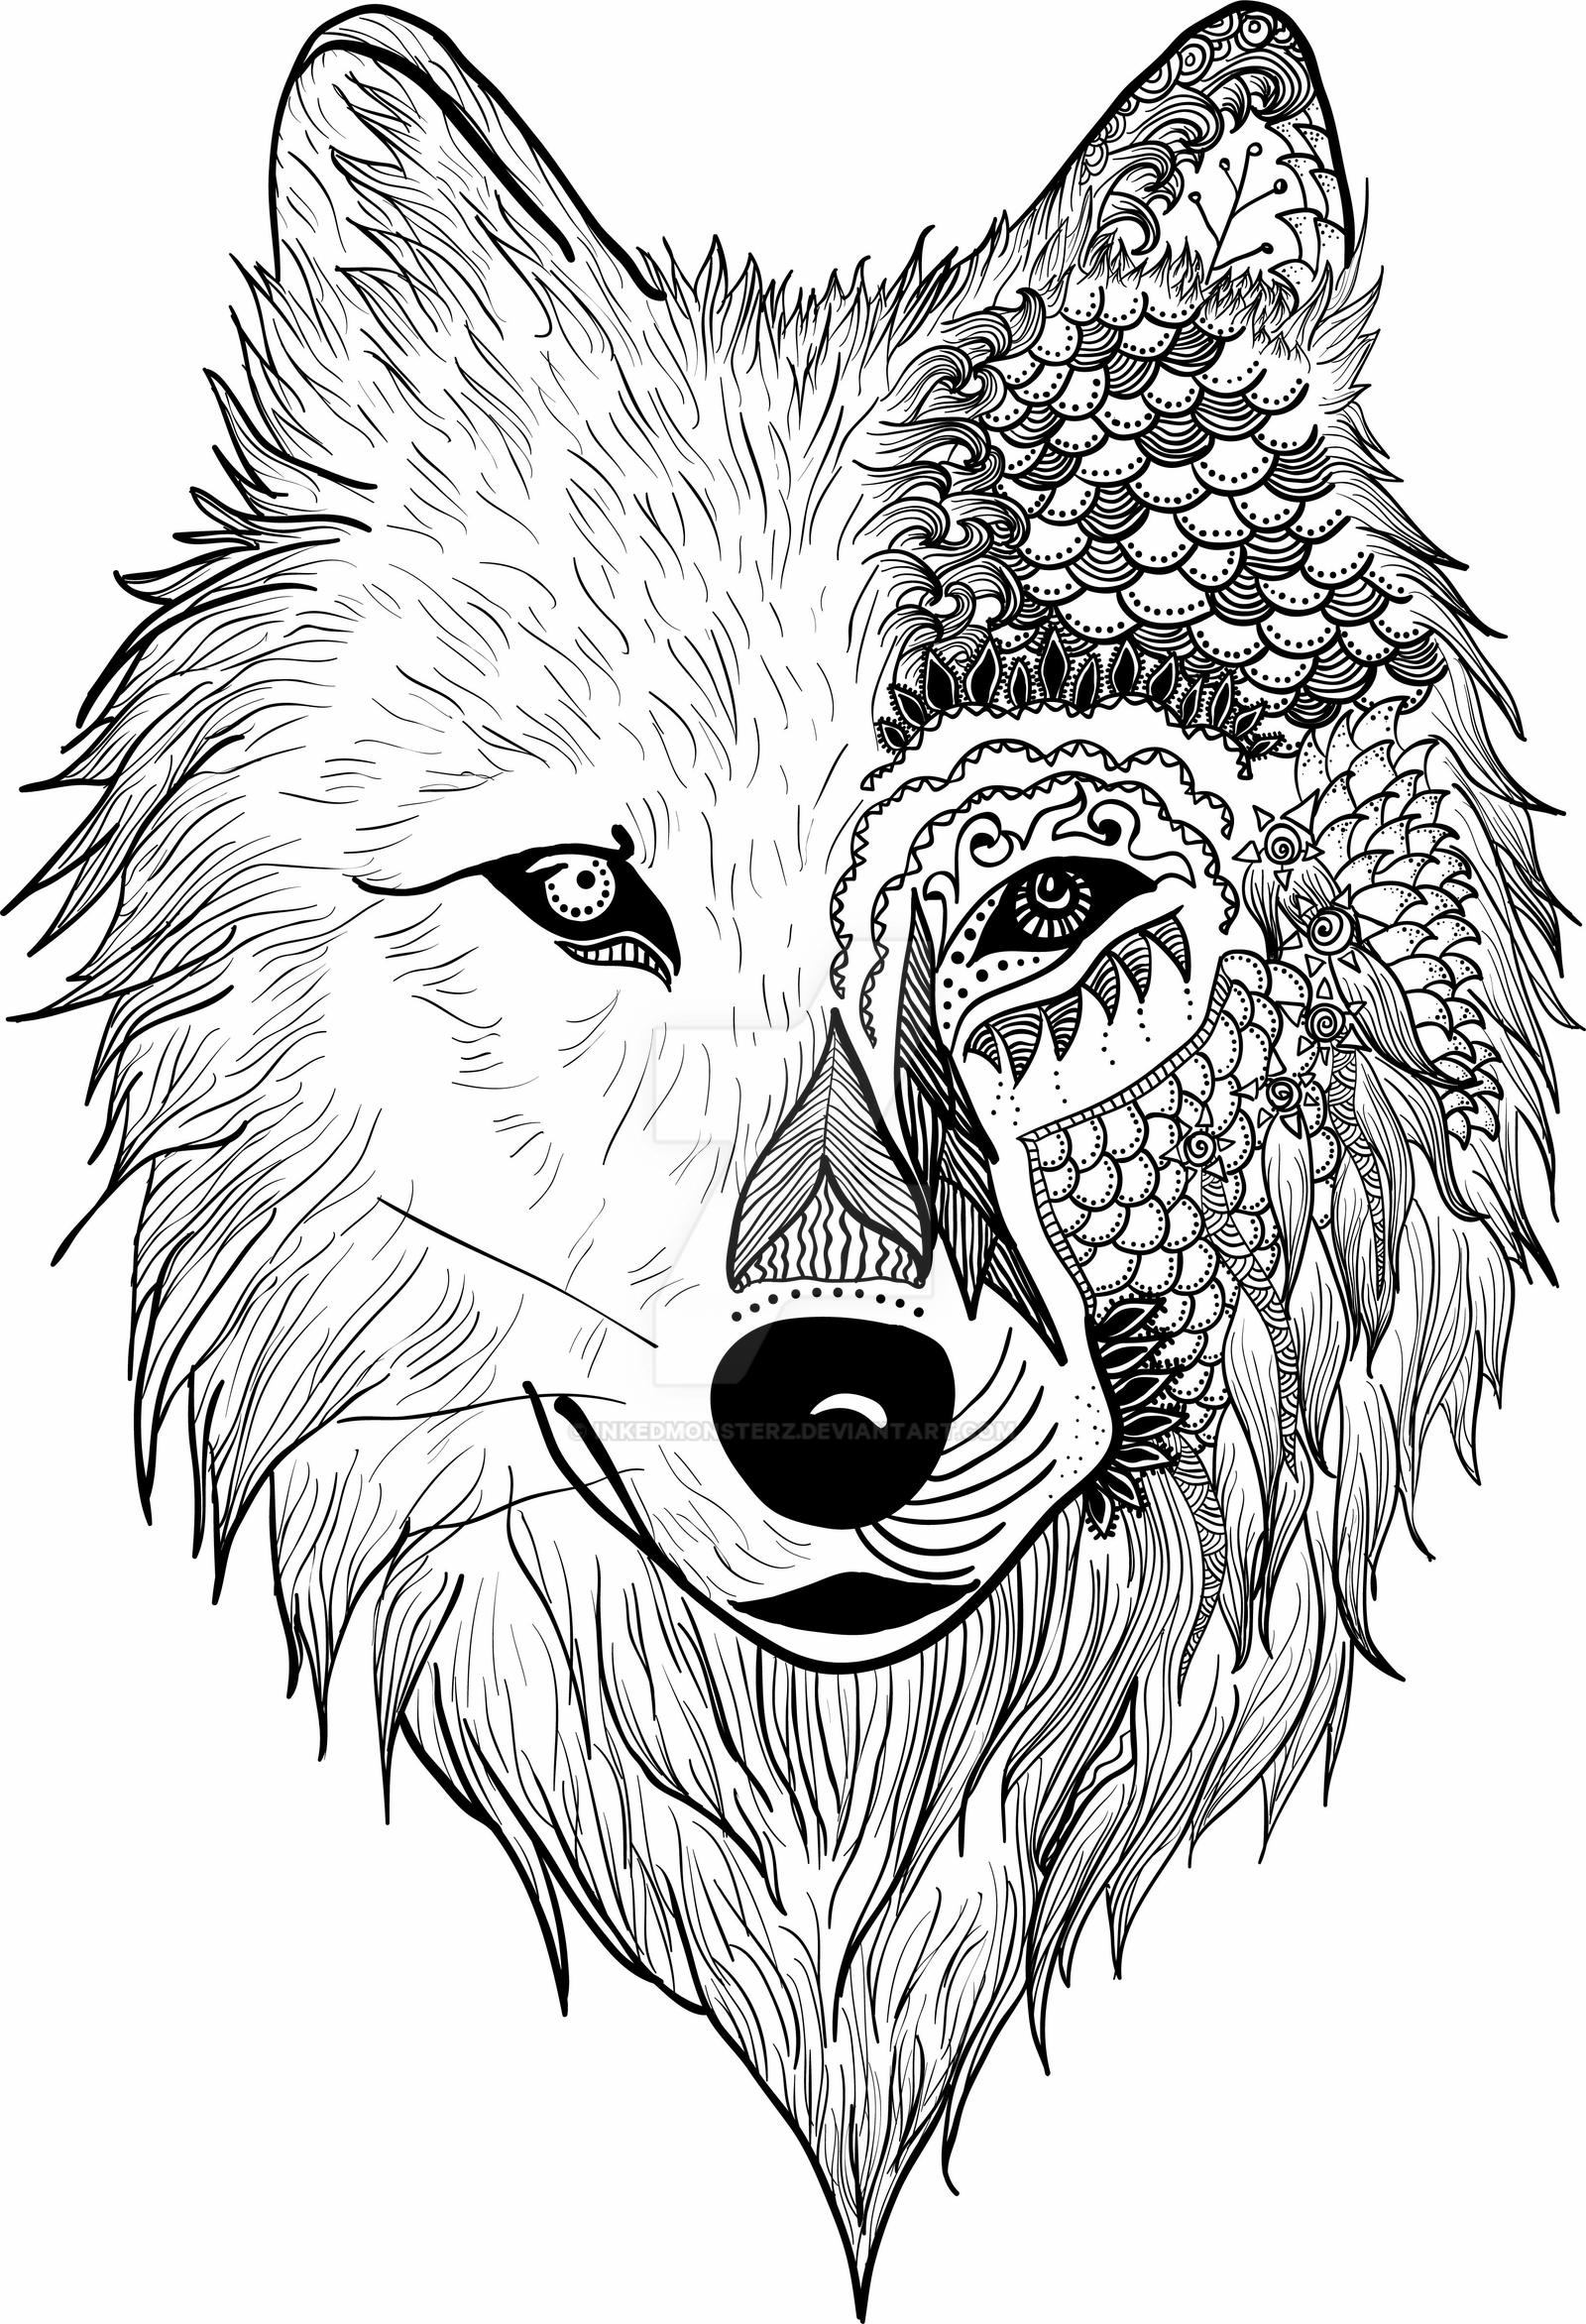 wolf coloring images free printable wolf coloring pages for kids wolf coloring images